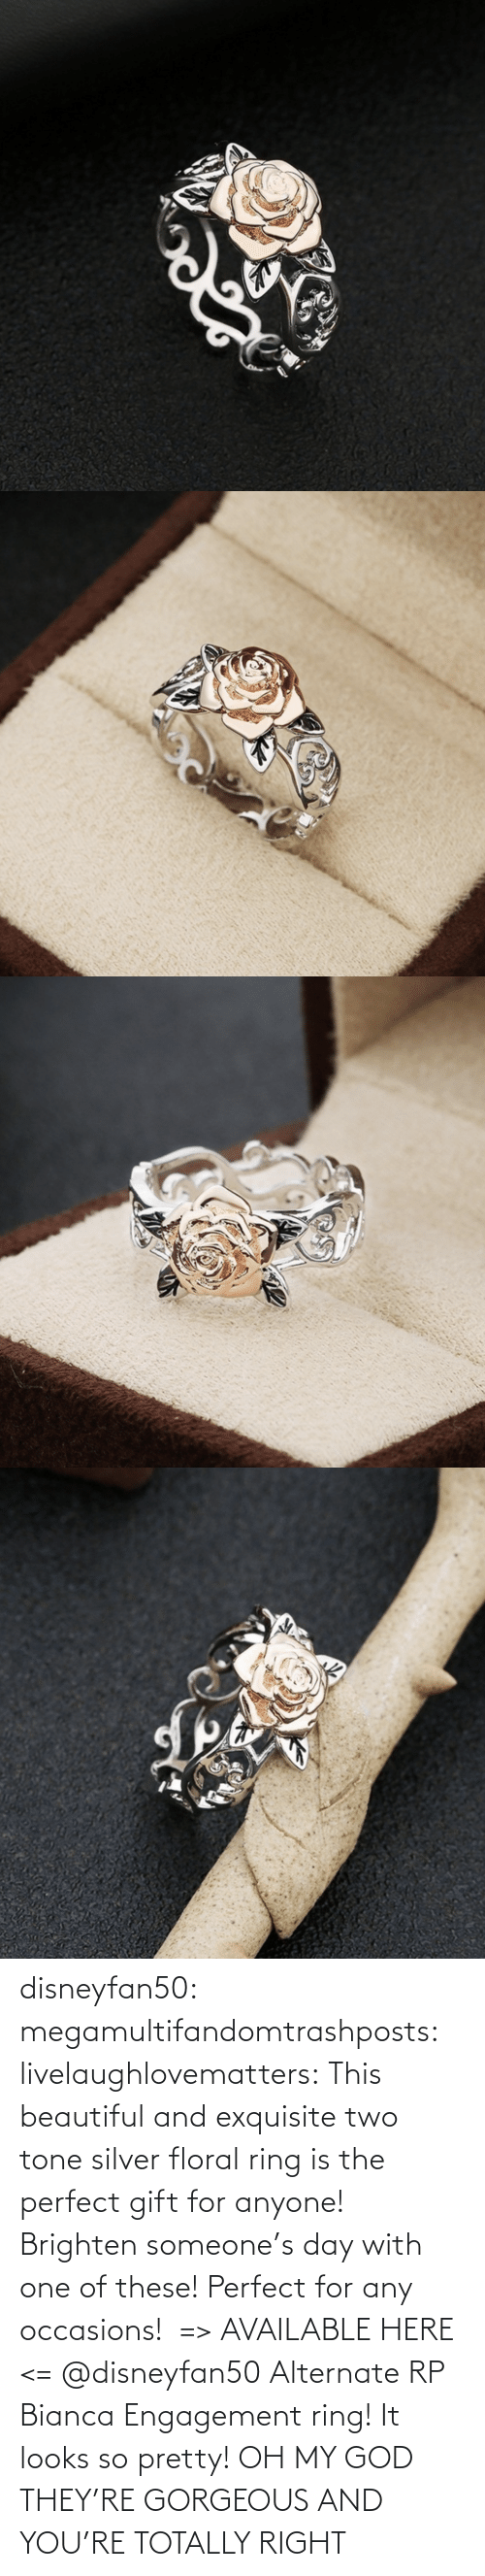 my god: disneyfan50: megamultifandomtrashposts:  livelaughlovematters:  This beautiful and exquisite two tone silver floral ring is the perfect gift for anyone! Brighten someone's day with one of these! Perfect for any occasions!  => AVAILABLE HERE <=    @disneyfan50 Alternate RP Bianca Engagement ring! It looks so pretty!  OH MY GOD THEY'RE GORGEOUS AND YOU'RE TOTALLY RIGHT